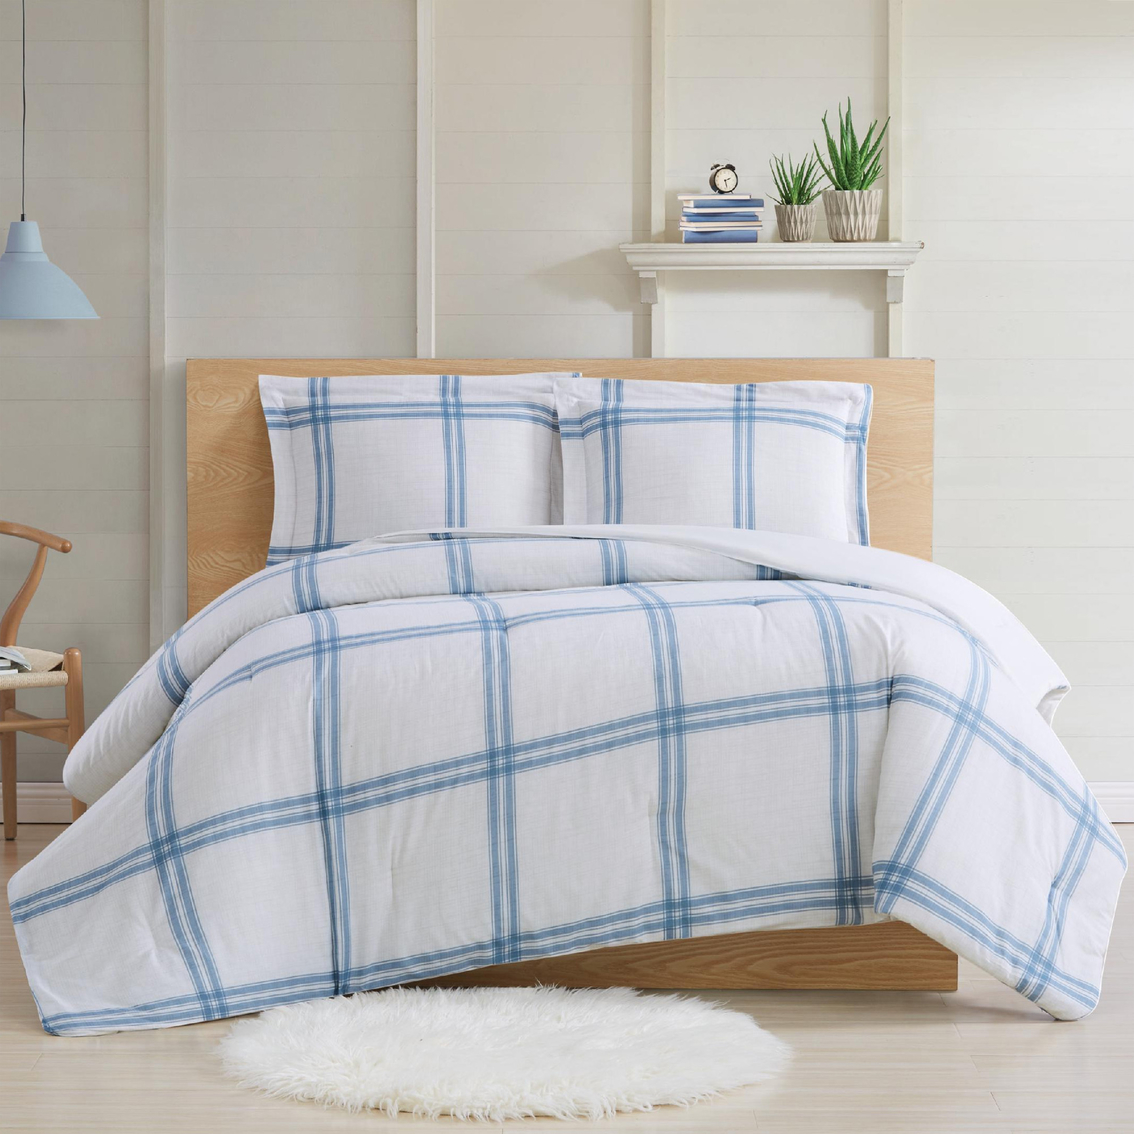 Cottage Classics Farmhouse 3 Pc Comforter Set Bedding Sets Household Shop The Exchange